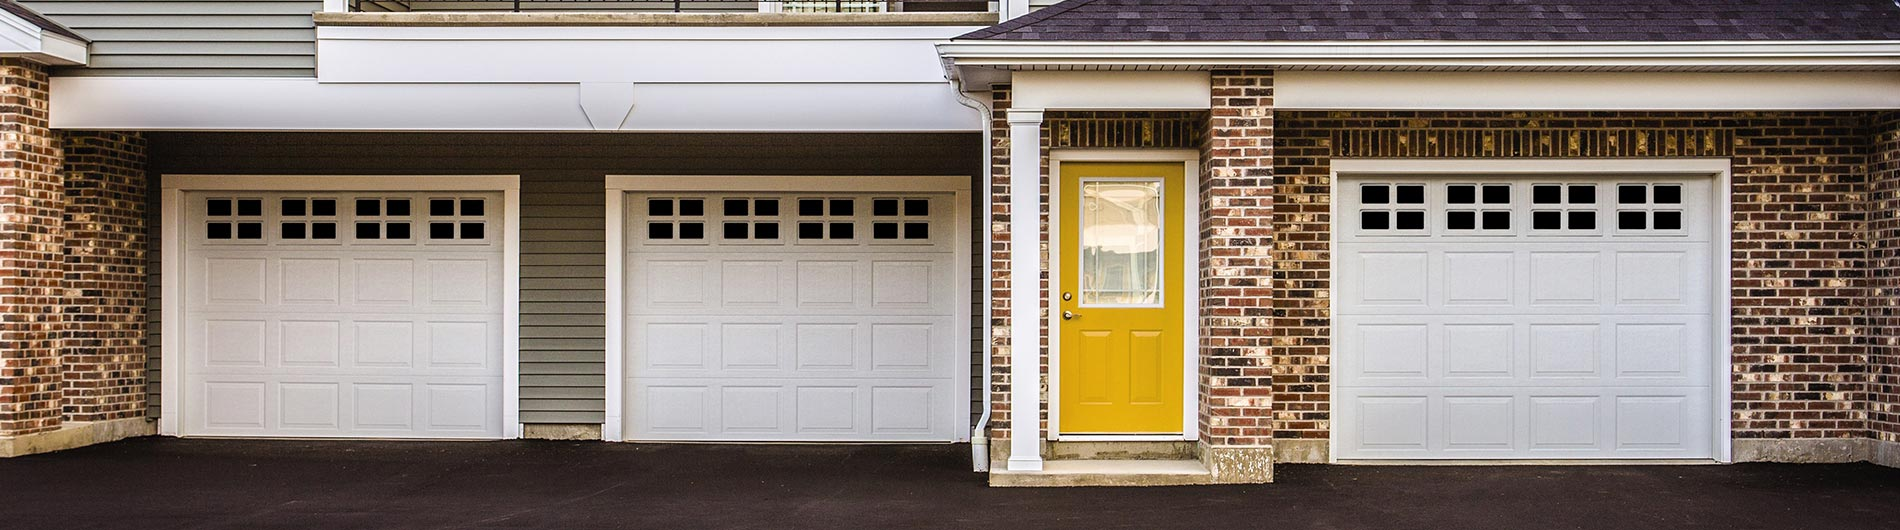 model-9100-9605-Steel-Garage-Door-Colonial-White-StockbridgeI